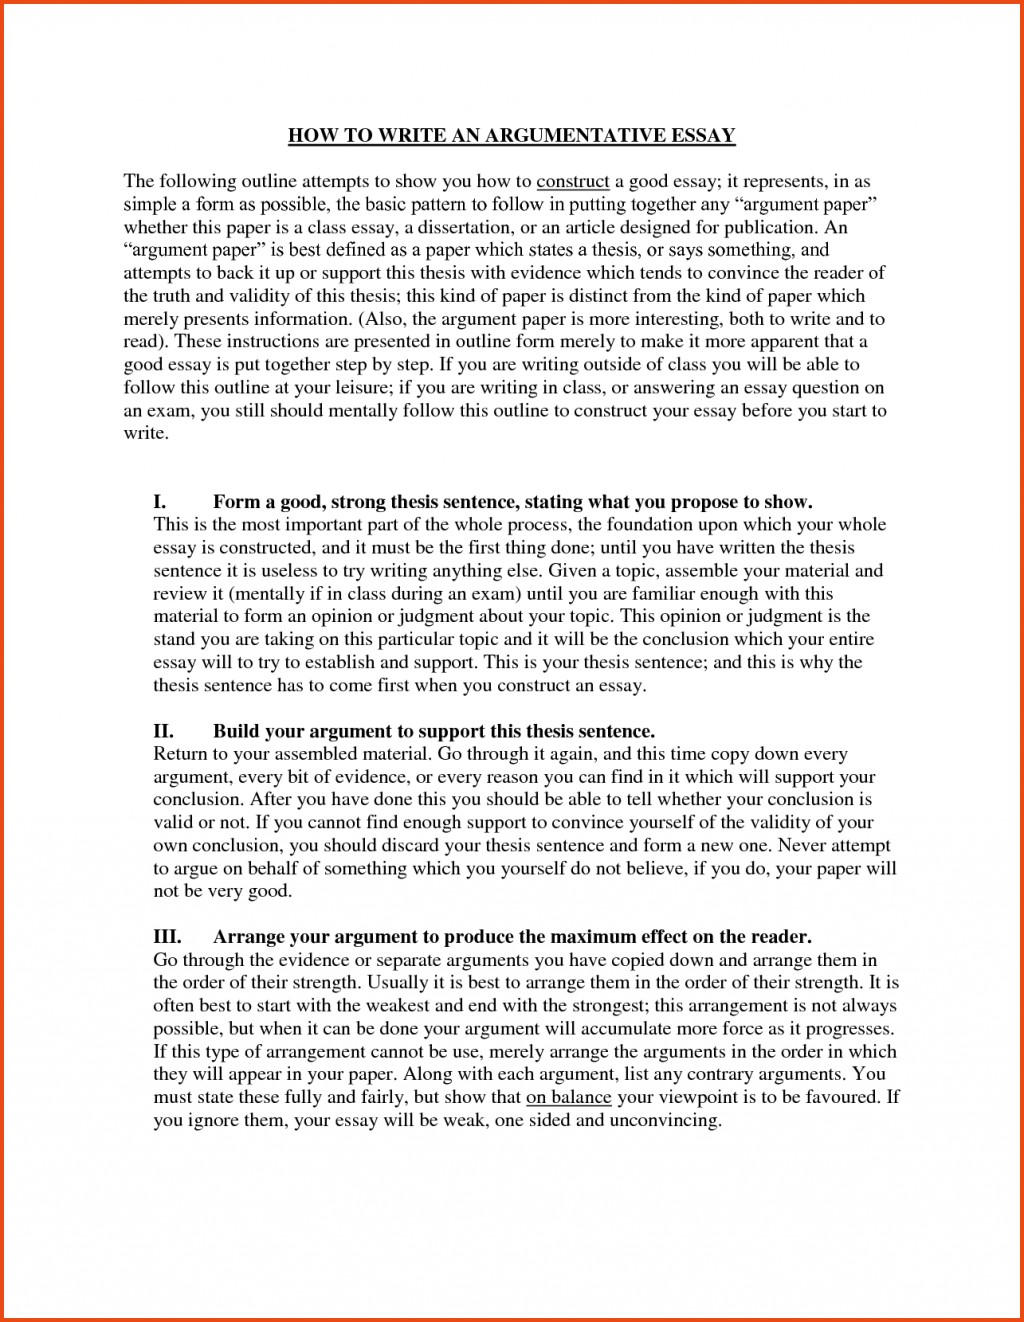 005 Essay Example How To Start An Brilliant Ideas Of Good Ways About Yourself Dissertation Nice Amazing Bad With A Question Definition Large